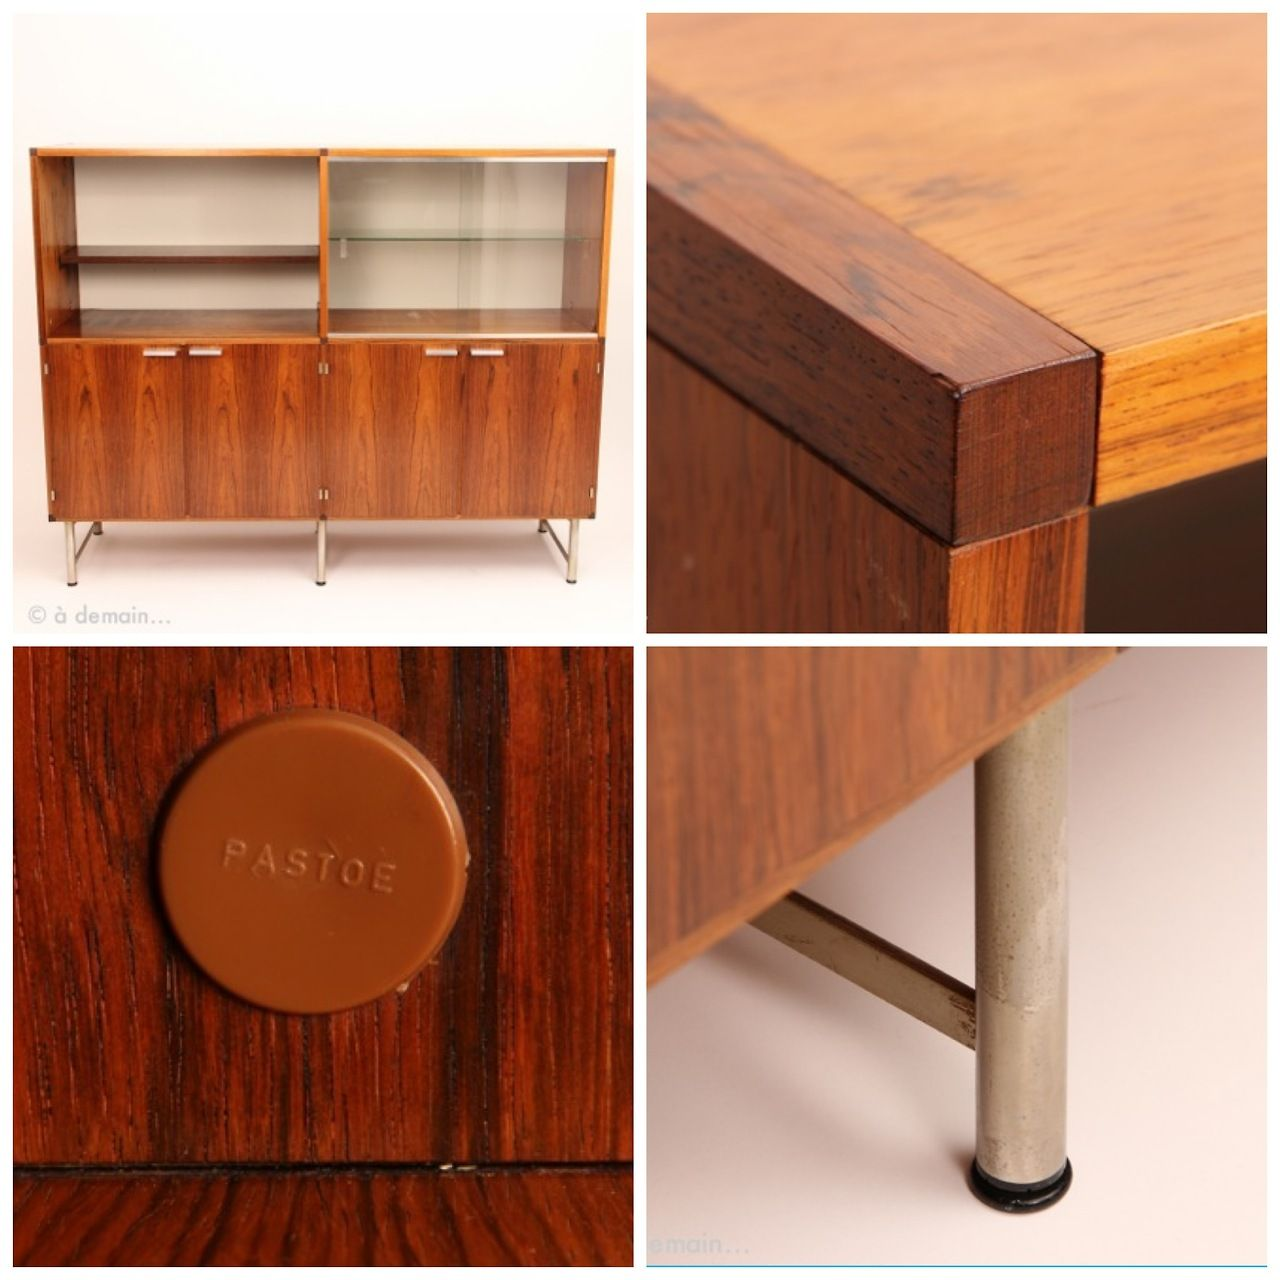 This 1960s Cees Braakman High Sideboard Edited By Pastoe Is A Classic Dutch  Modern Furnitureu2026 Cees Braakman Invented A System Of Modular Furniture  Designed ...